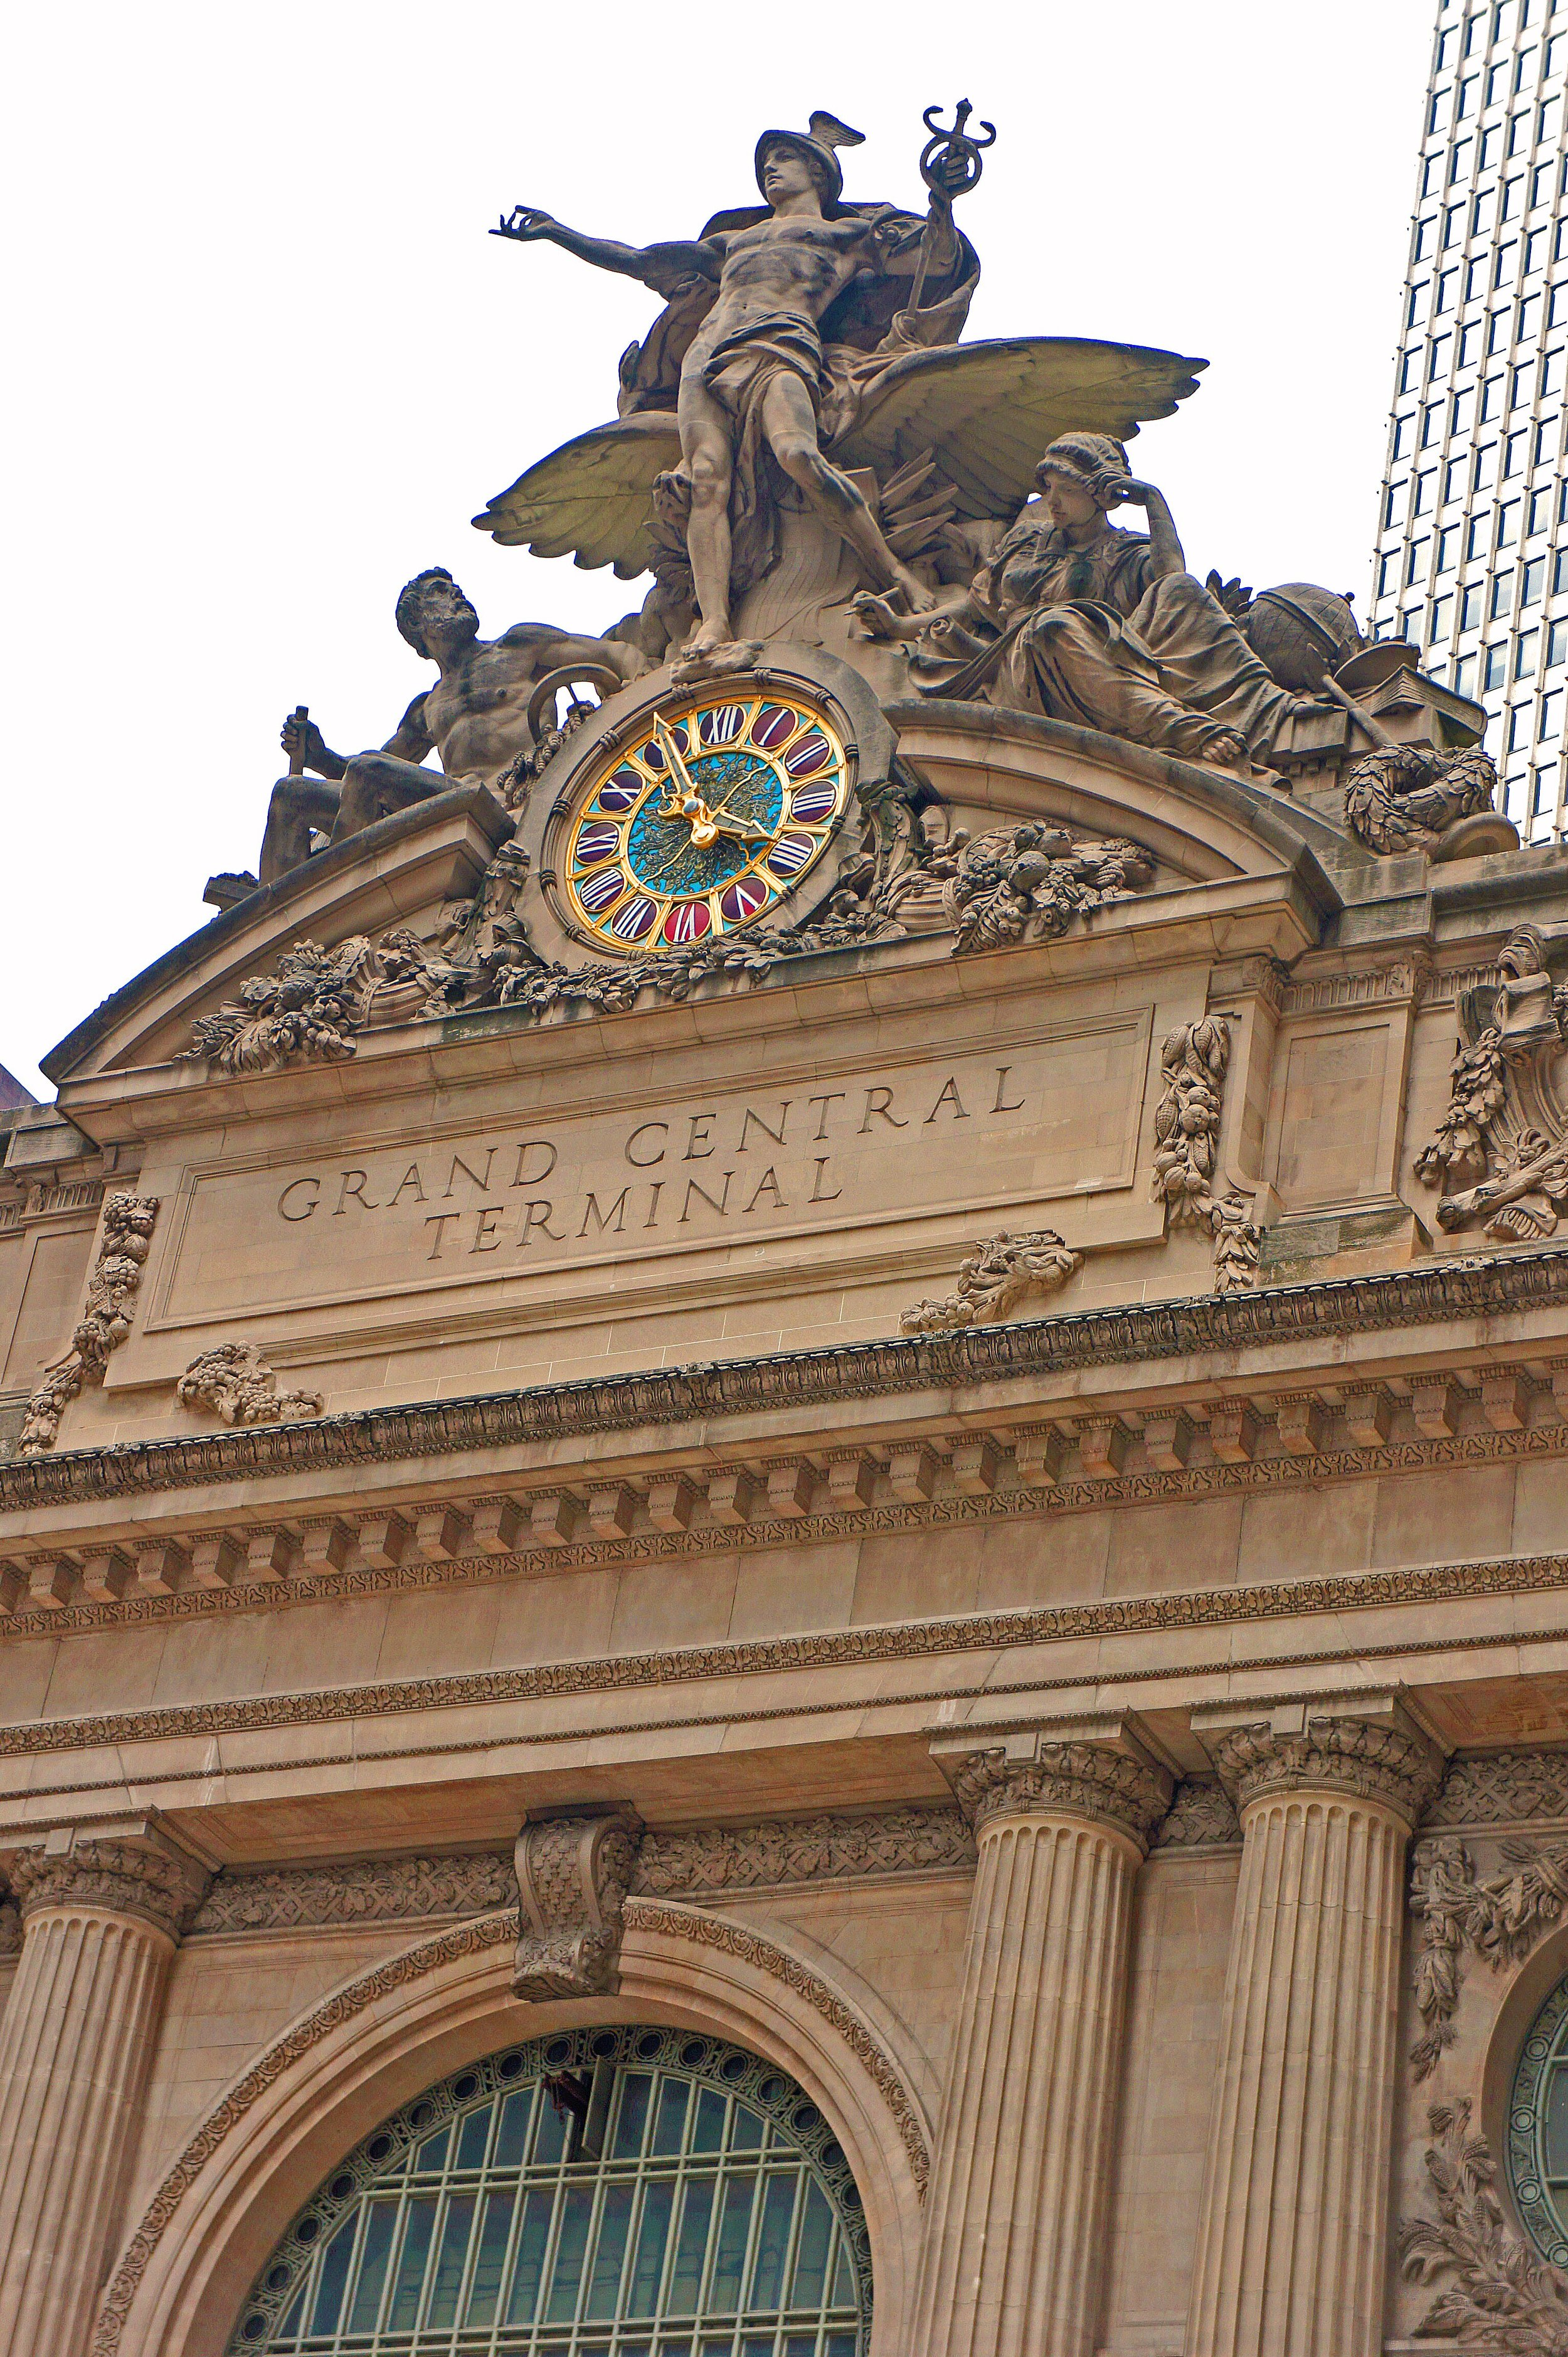 Indiana Limestone, Grand Central Terminal, NYC